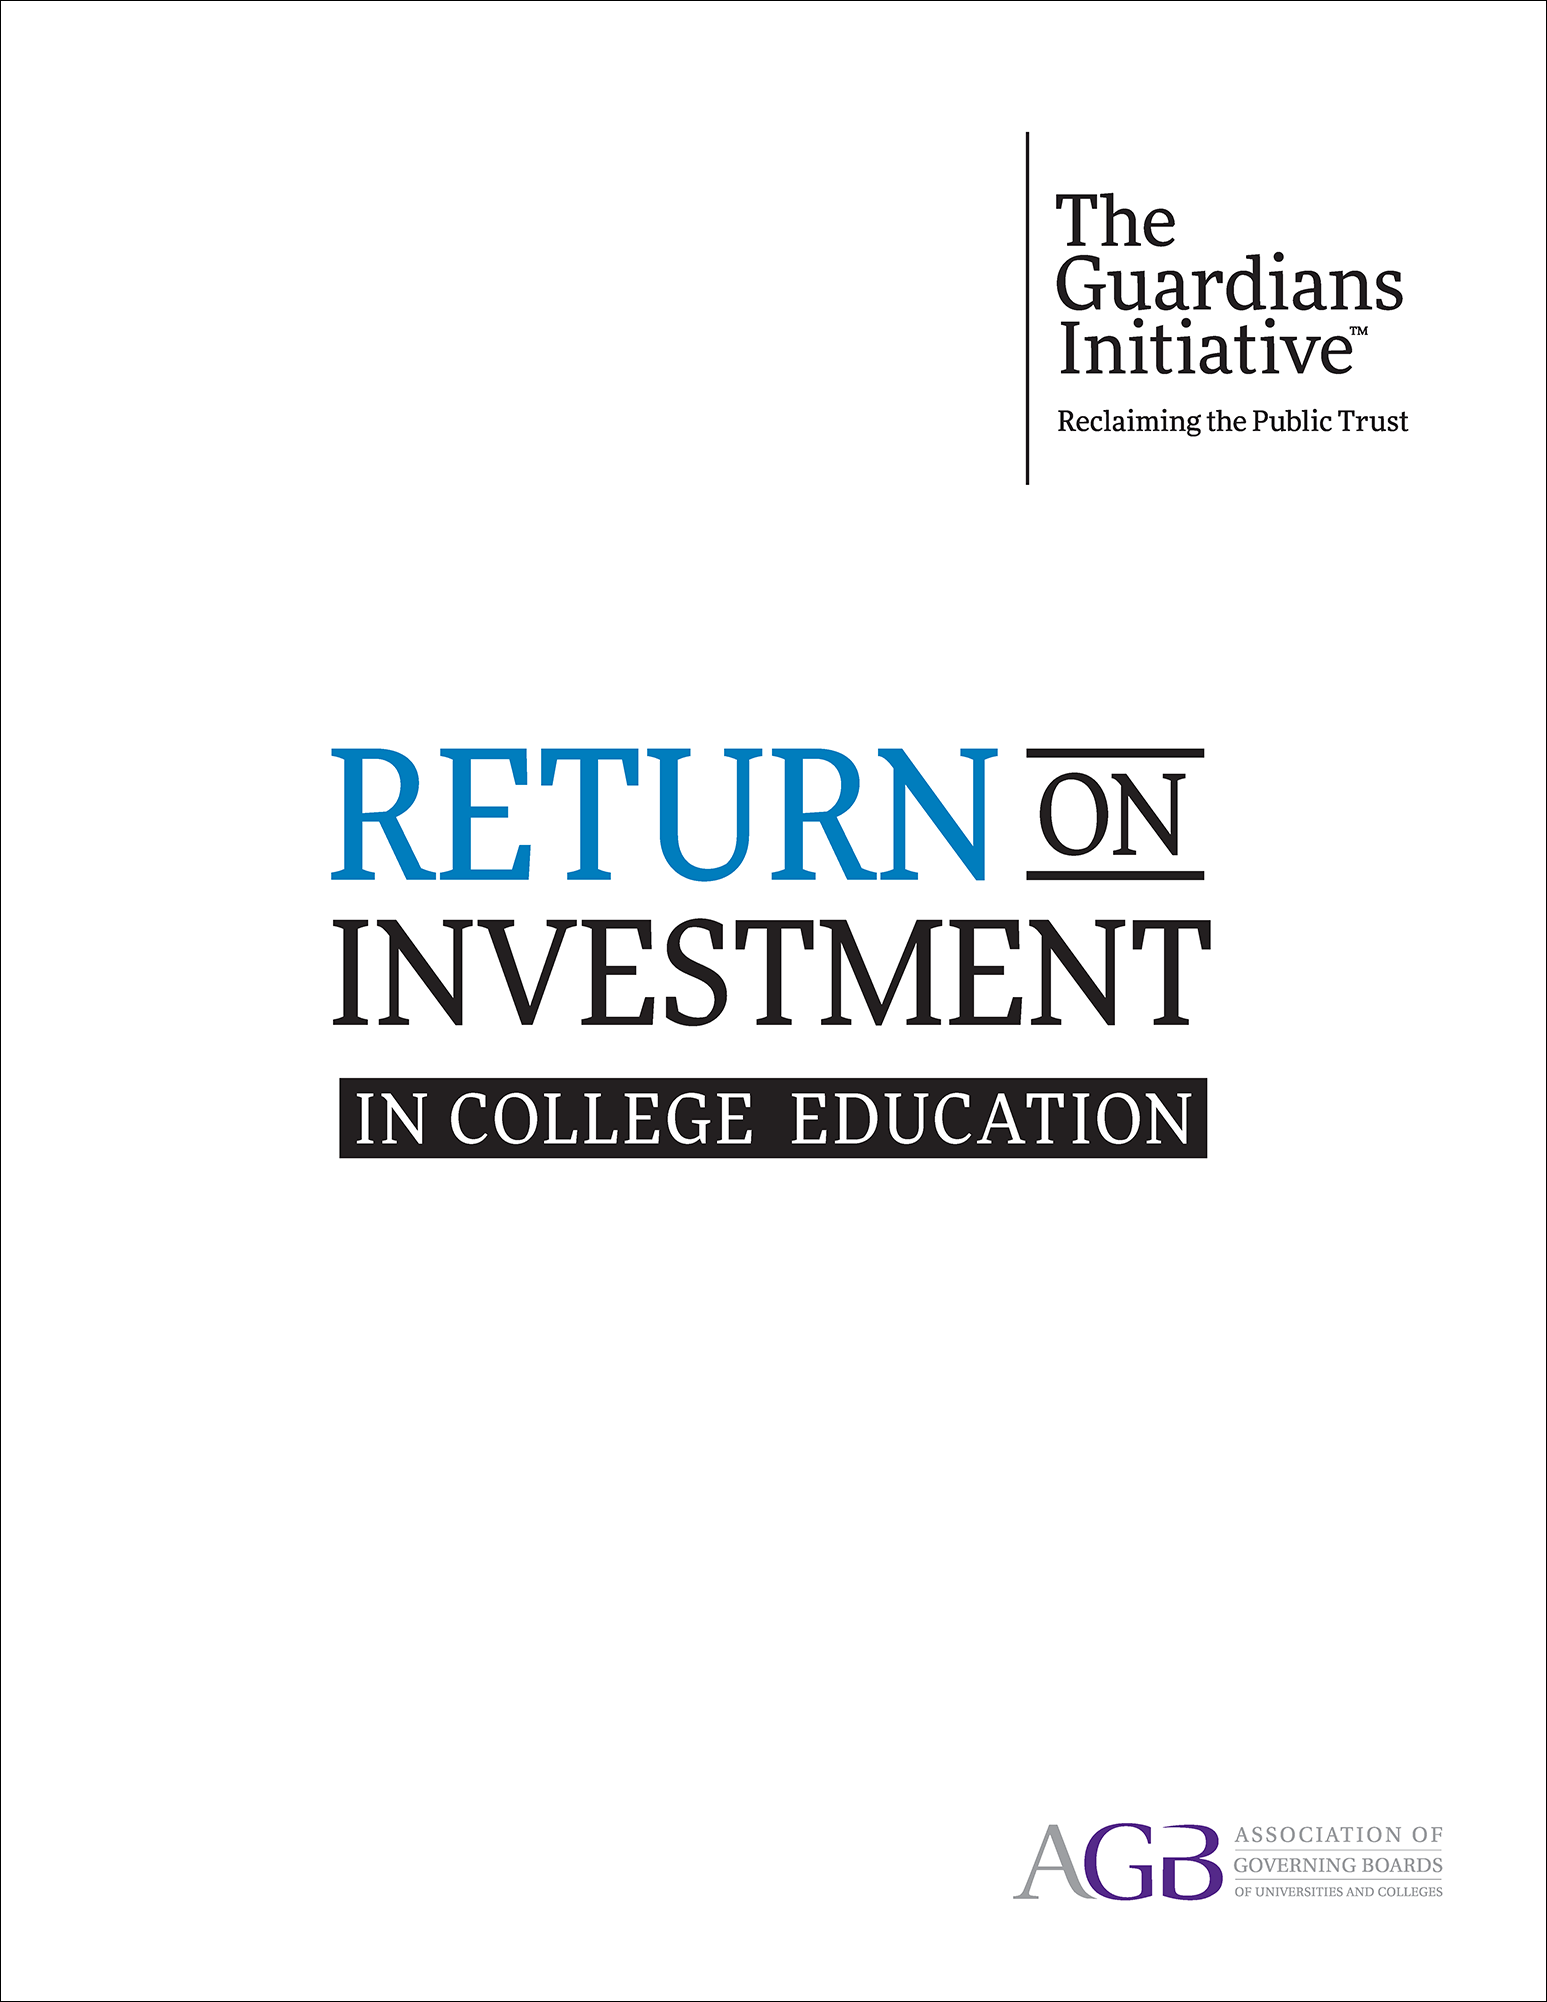 Return on Investment in College Education